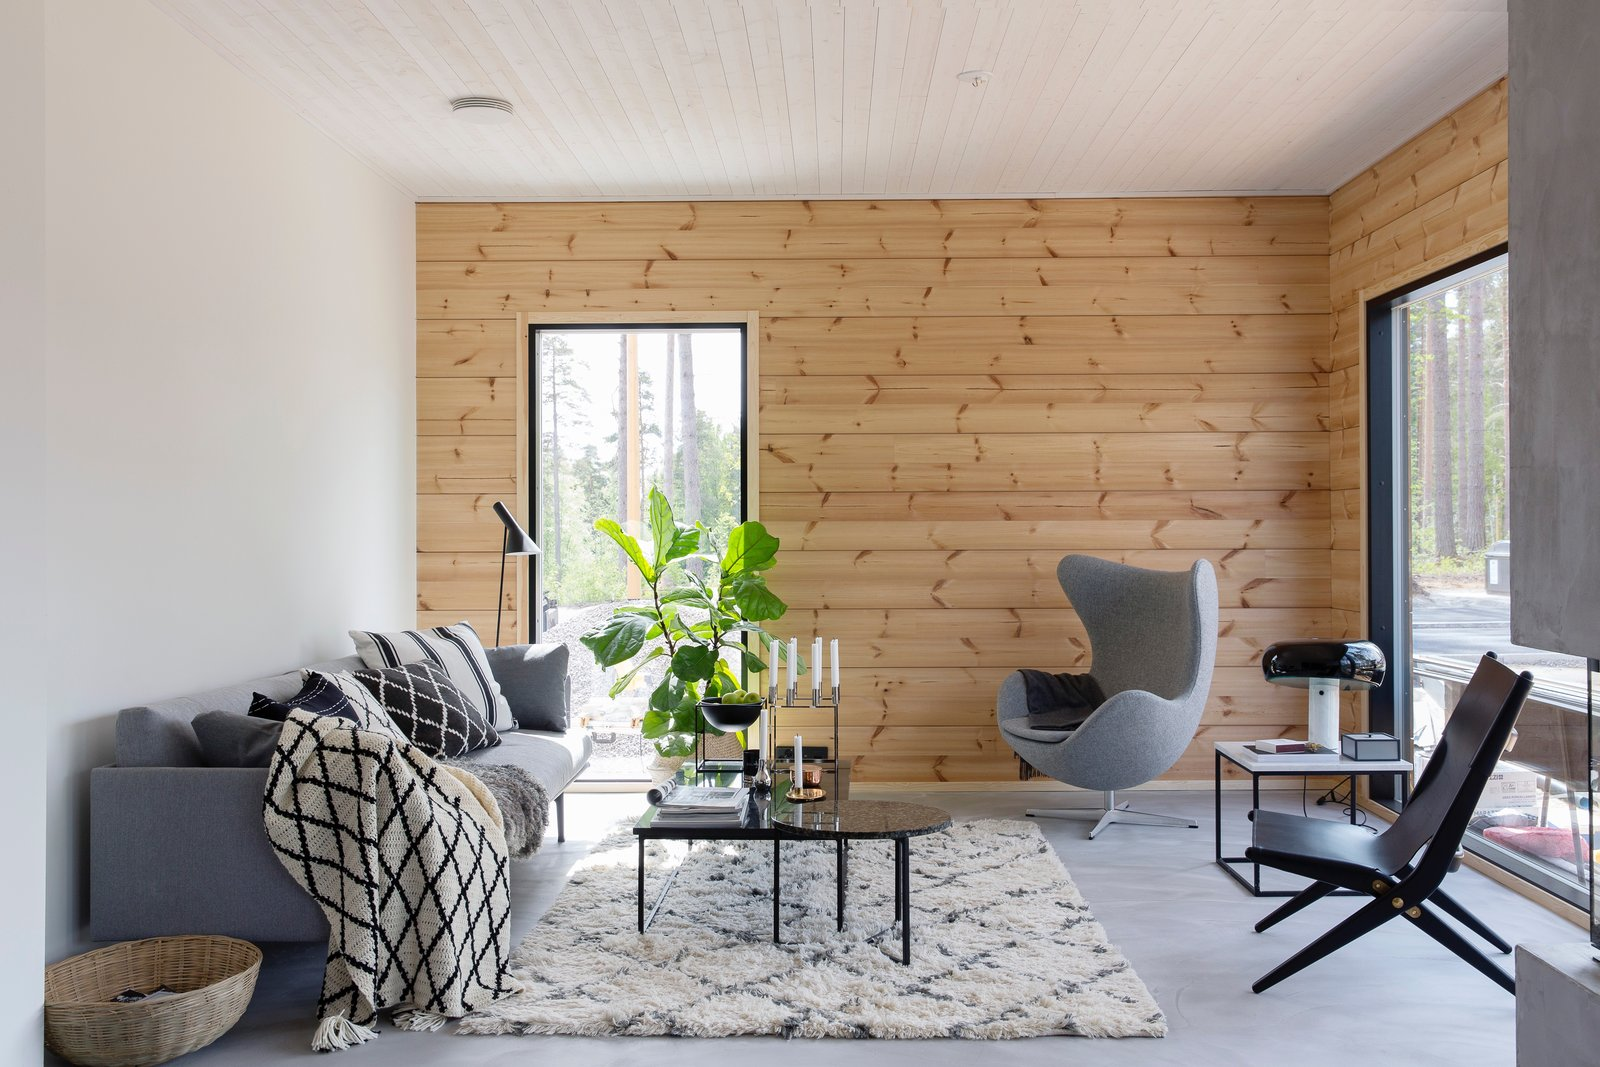 Living Room, Coffee Tables, Sofa, Chair, Floor Lighting, Rug Floor, and Table Lighting The living room of Ink, a Honka Fusion home furnished by interior designer Jonna Kivilahti.  Best Photos from These 8 Log Cabin Kit Homes Celebrate Nordic Minimalism